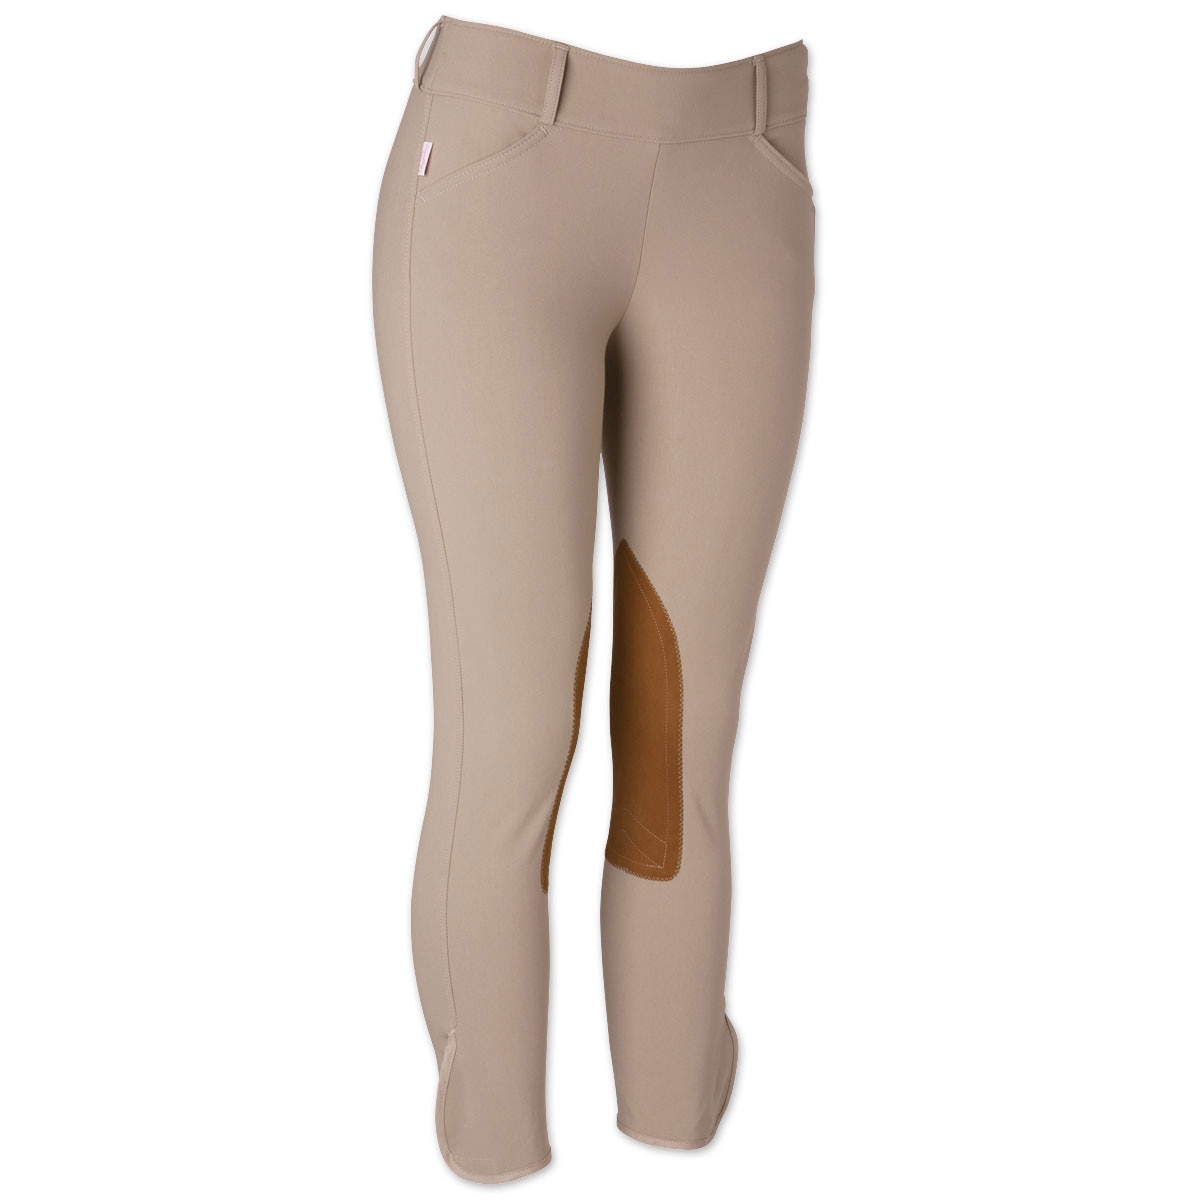 The Tailored Sportsman Trophy Hunter